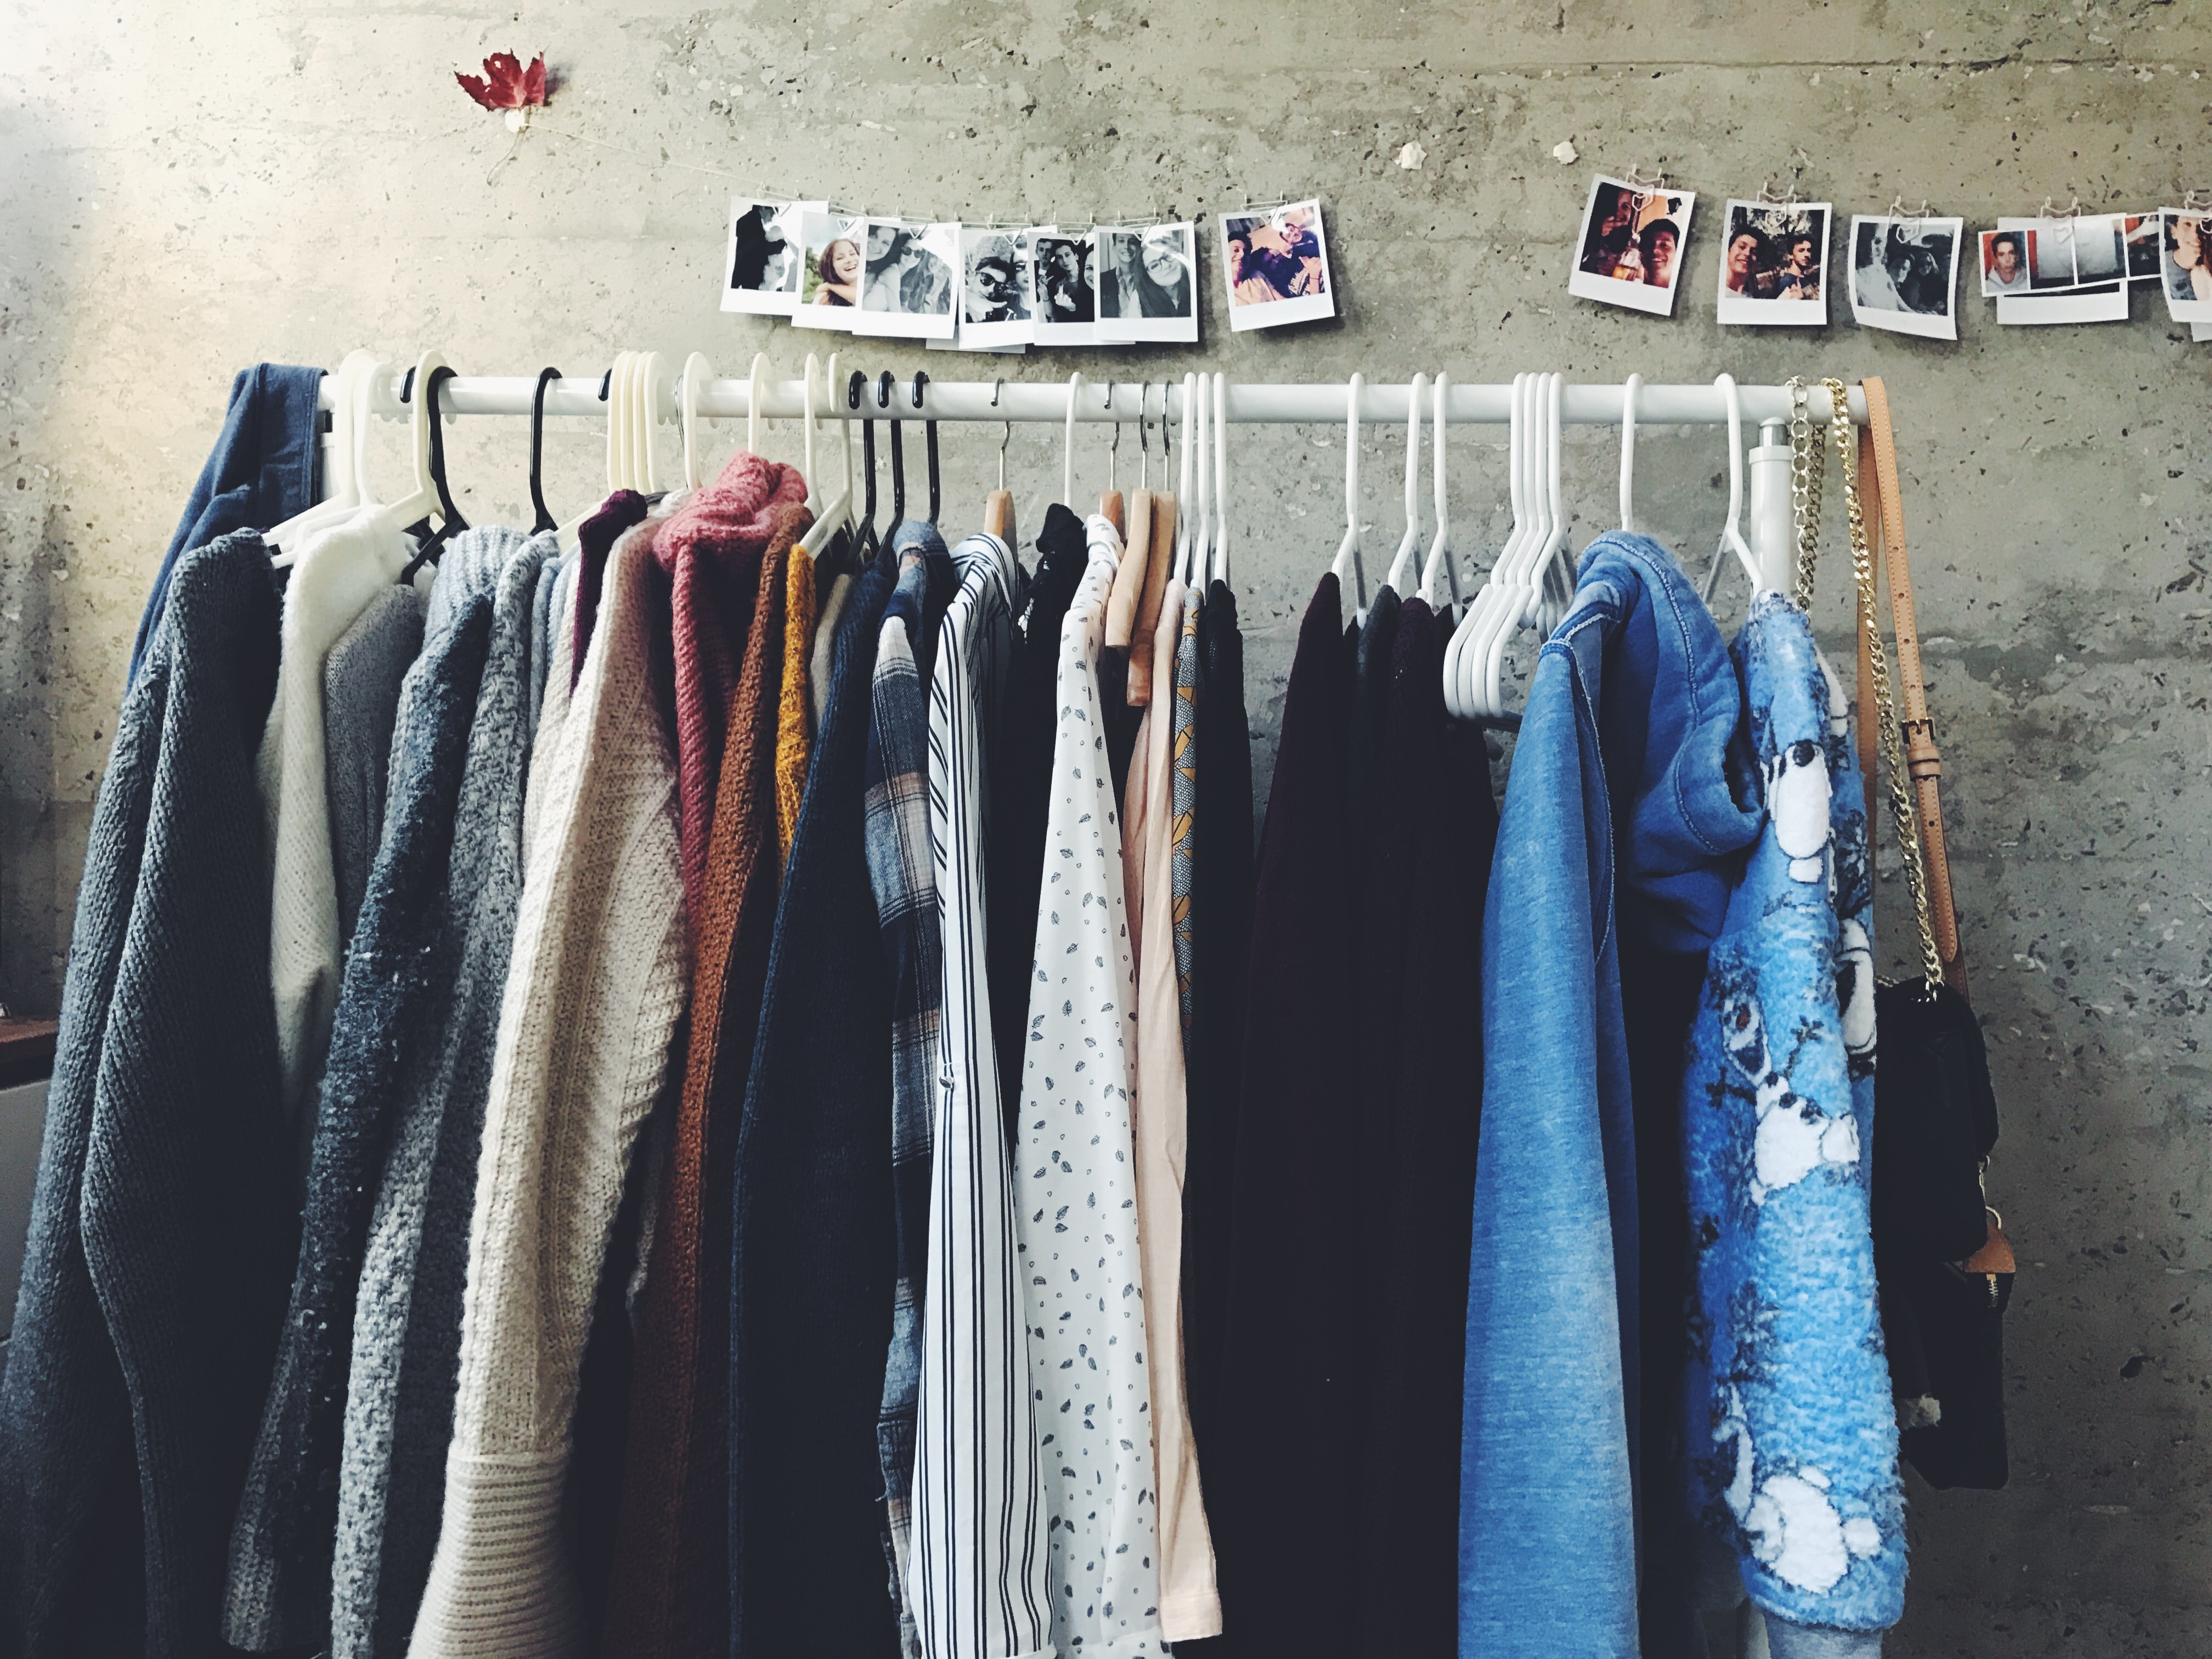 Rail of clothes in neutral colours with polaroid-style photos hanging above